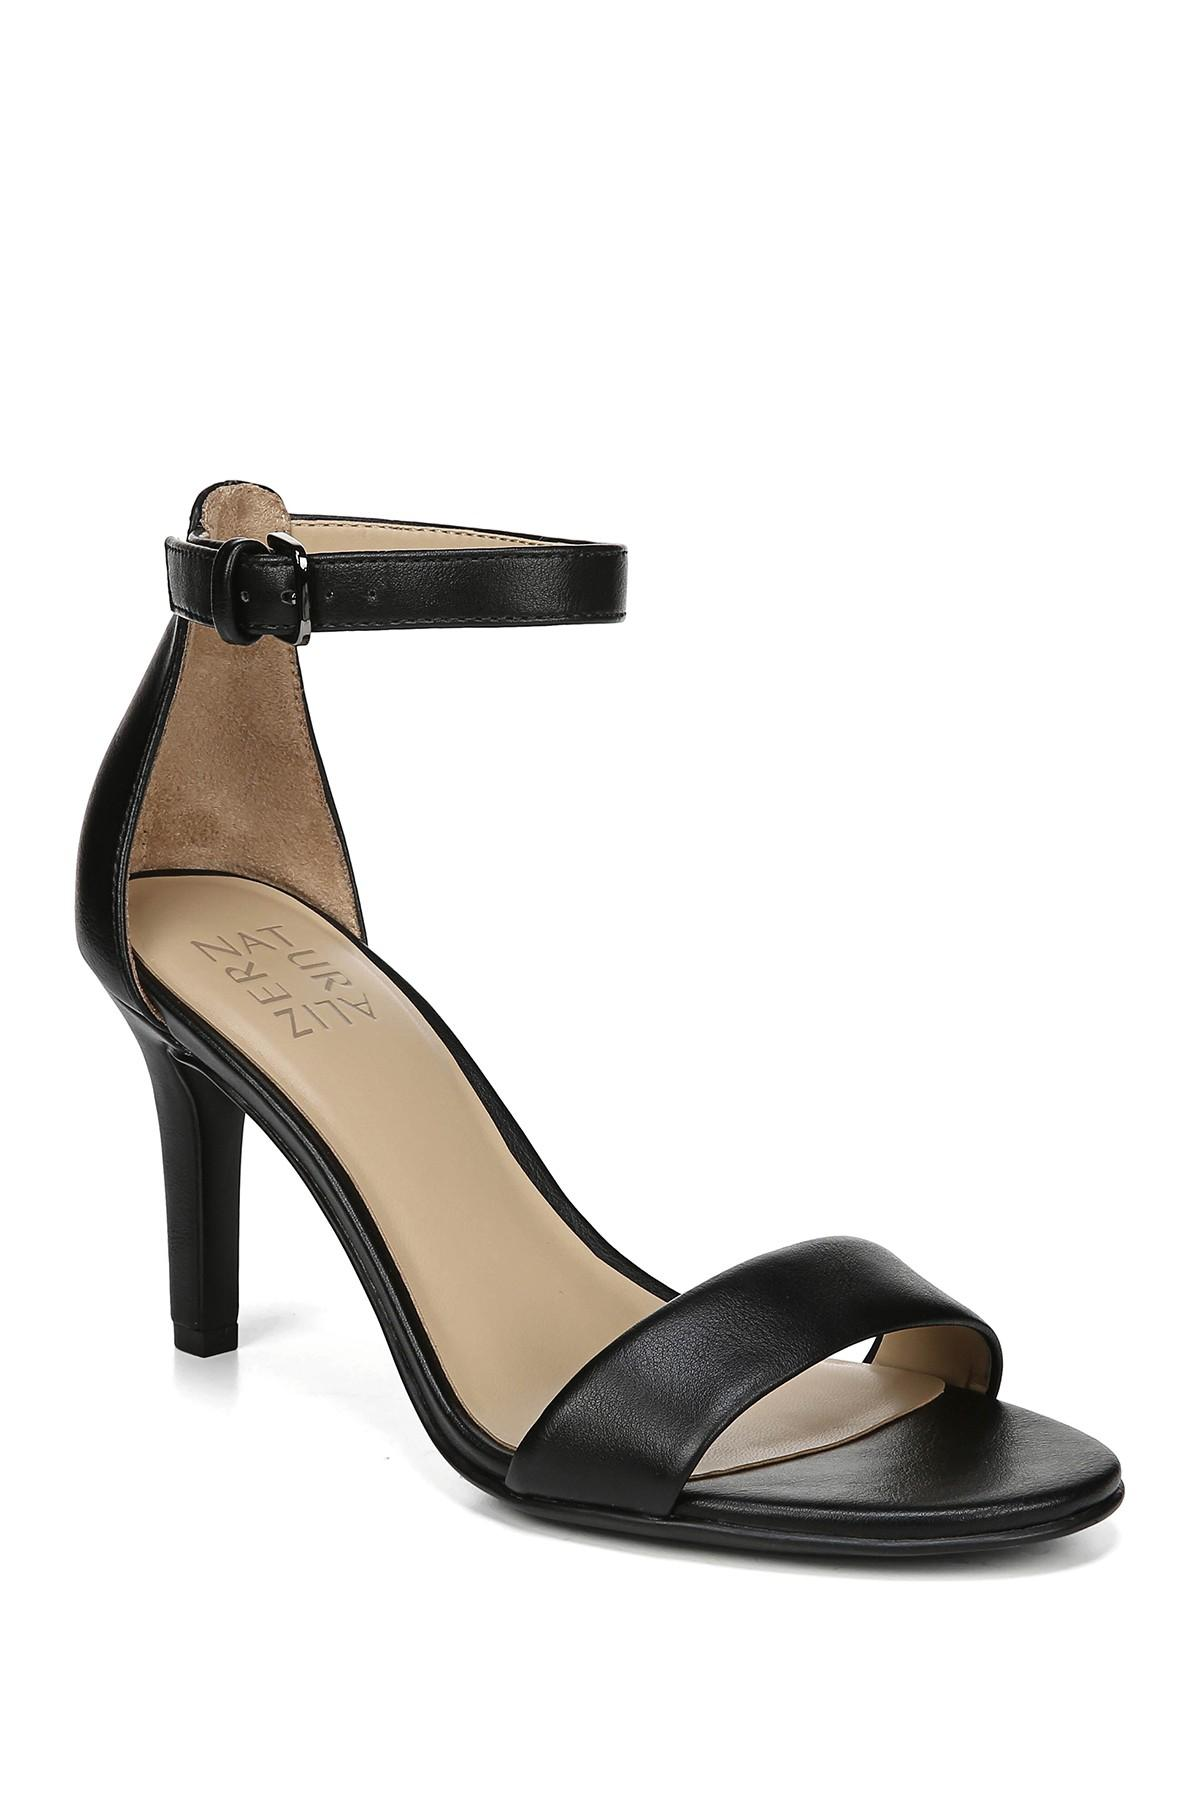 8fc69c8613f9 Naturalizer - Black Leah Ankle Strap Sandal - Wide Width Available - Lyst.  View fullscreen